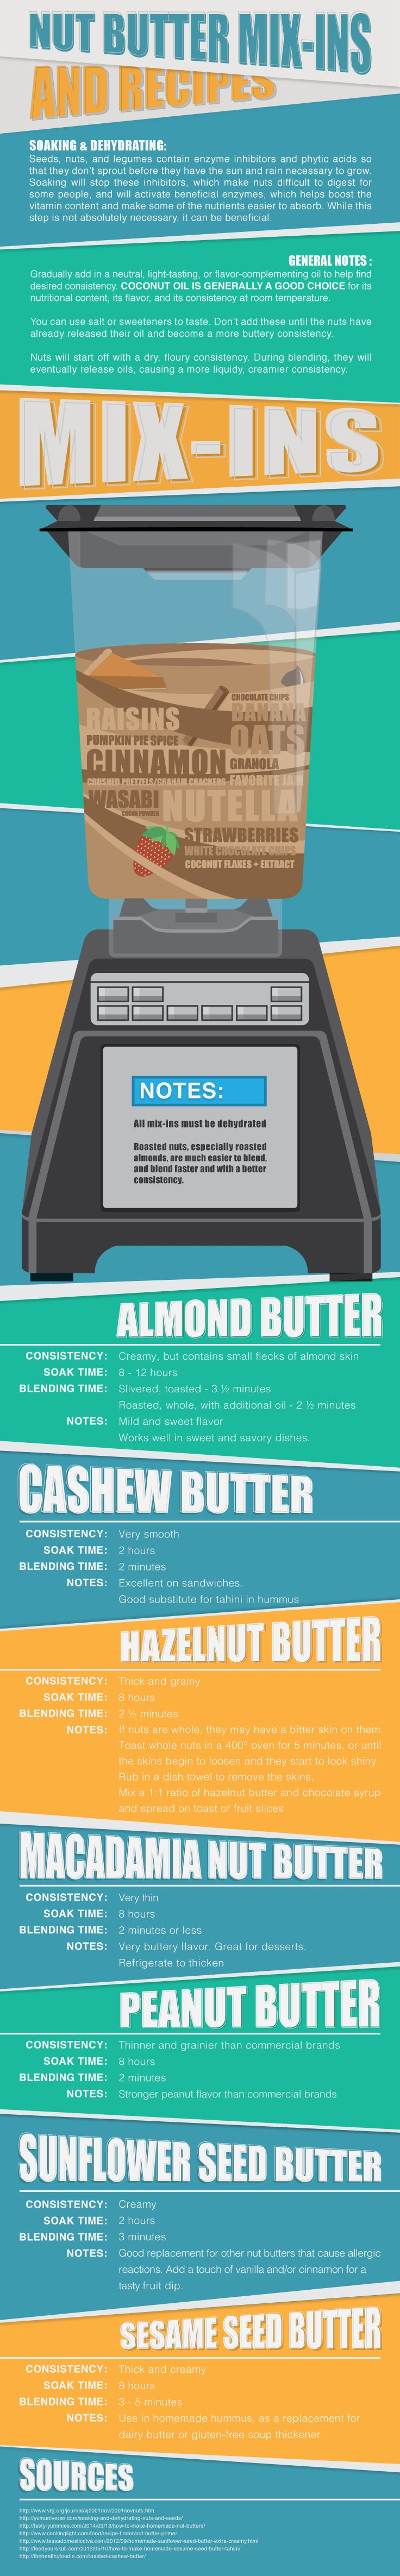 Nut butter is a delicious, simple to make treat. Try one of these nut butter recipes and change it up a mix-in. Get recipes and mix-in ideas here.